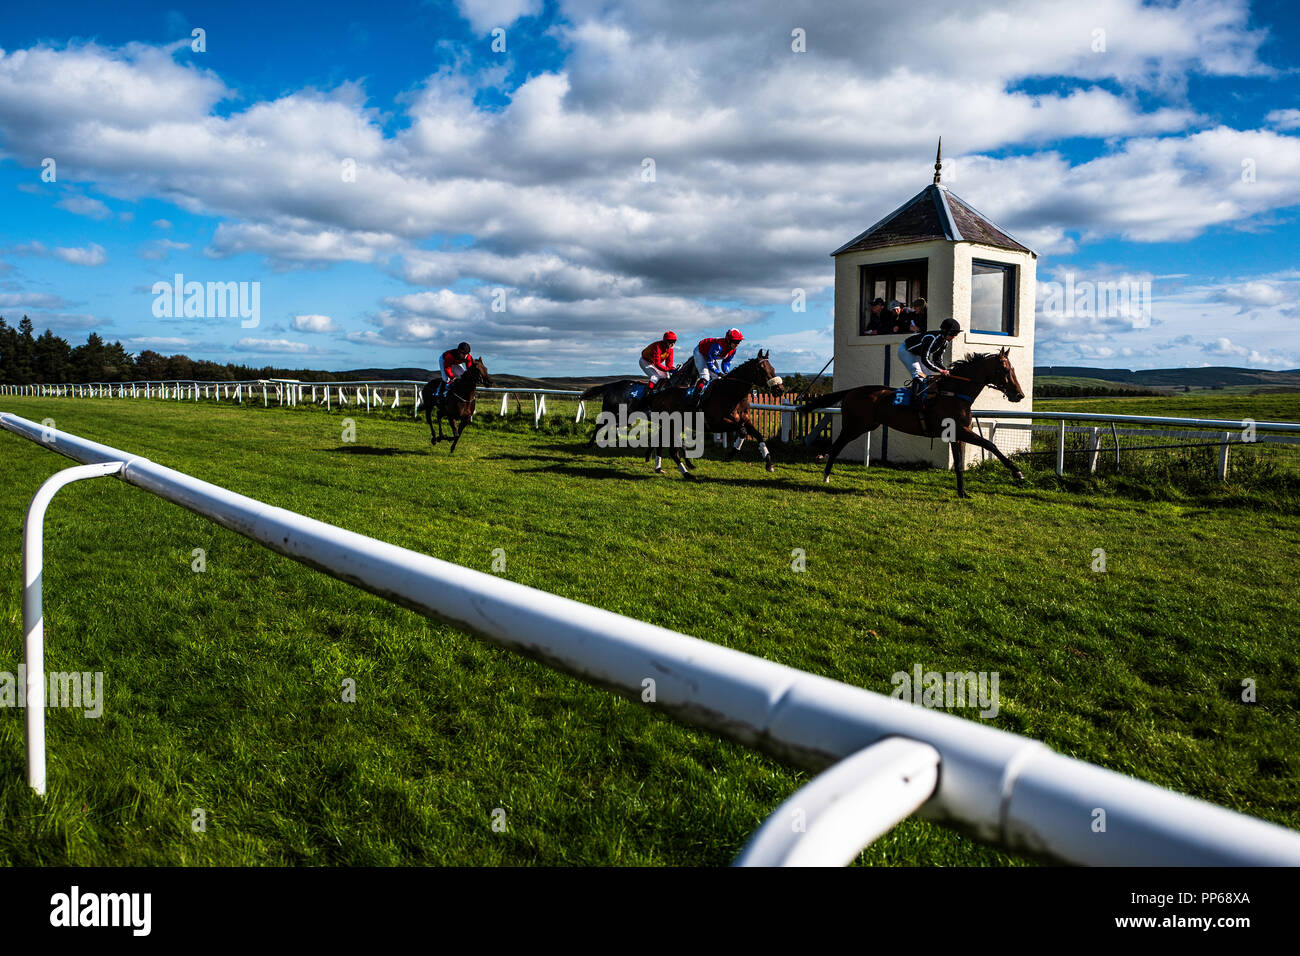 Hawick, Scottish Borders, UK. 22nd September 2018. Hawick Horse Racing Association hold their final meeting of the year. Flapping races are flat races - Stock Image